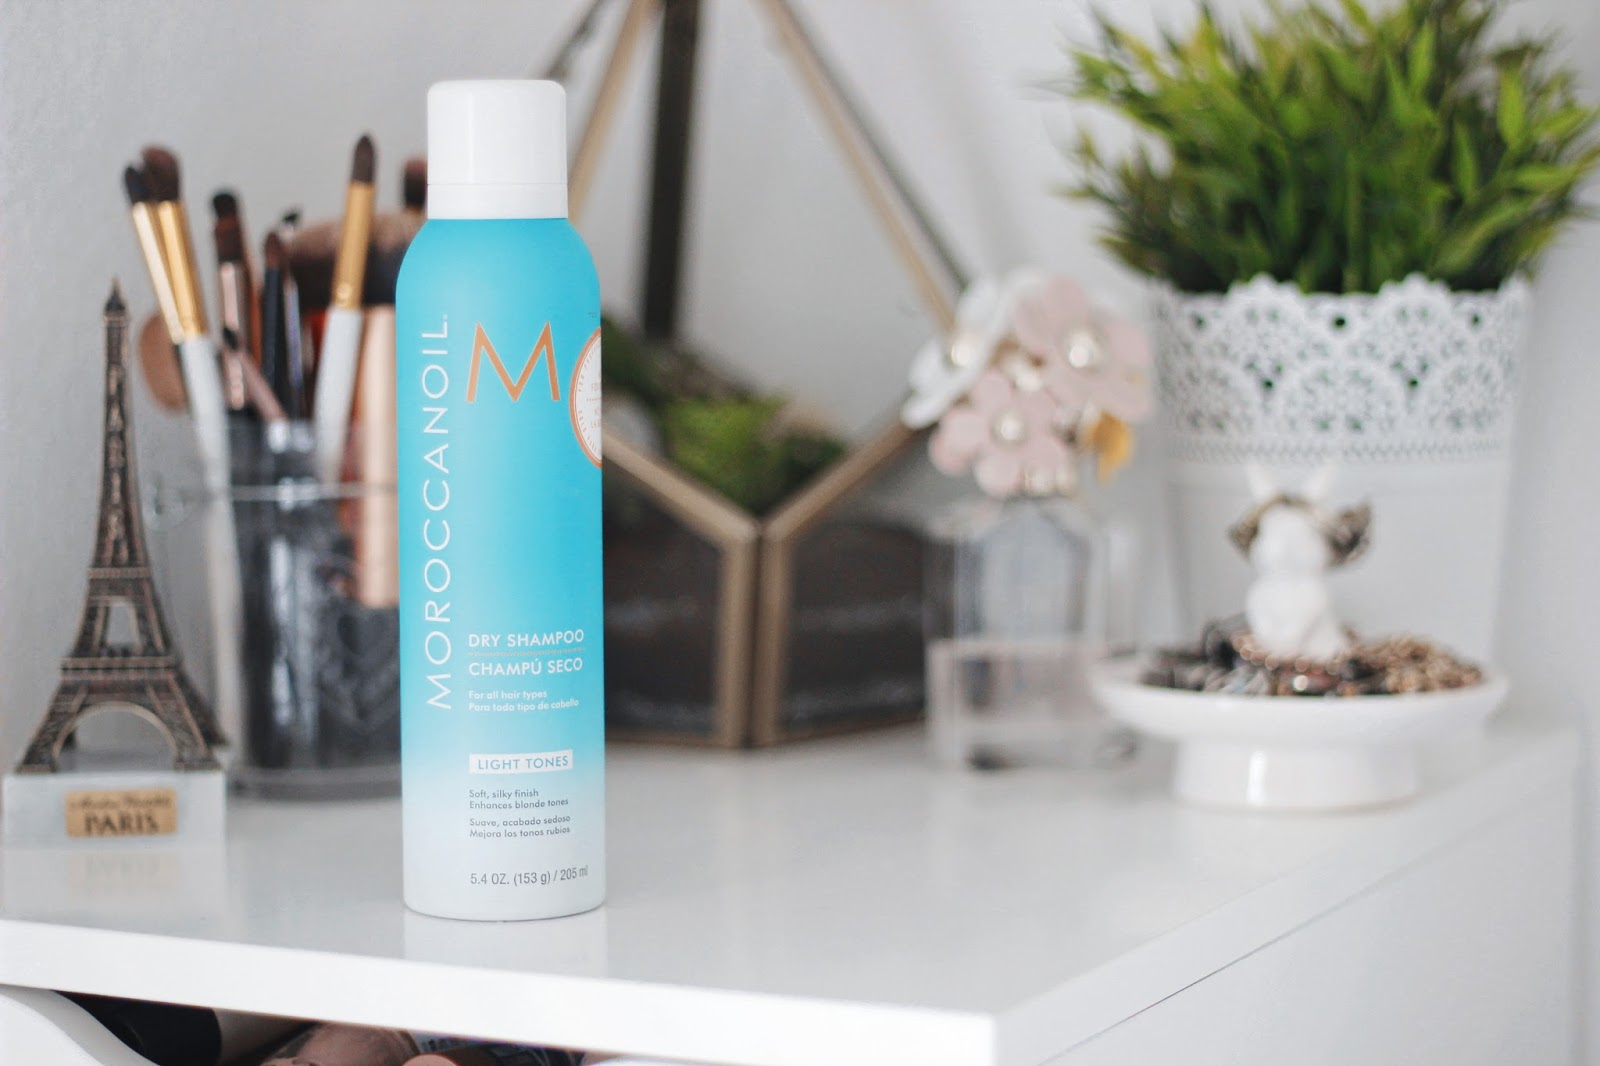 See The Stars - Moroccan Oil Dry Shampoo Review